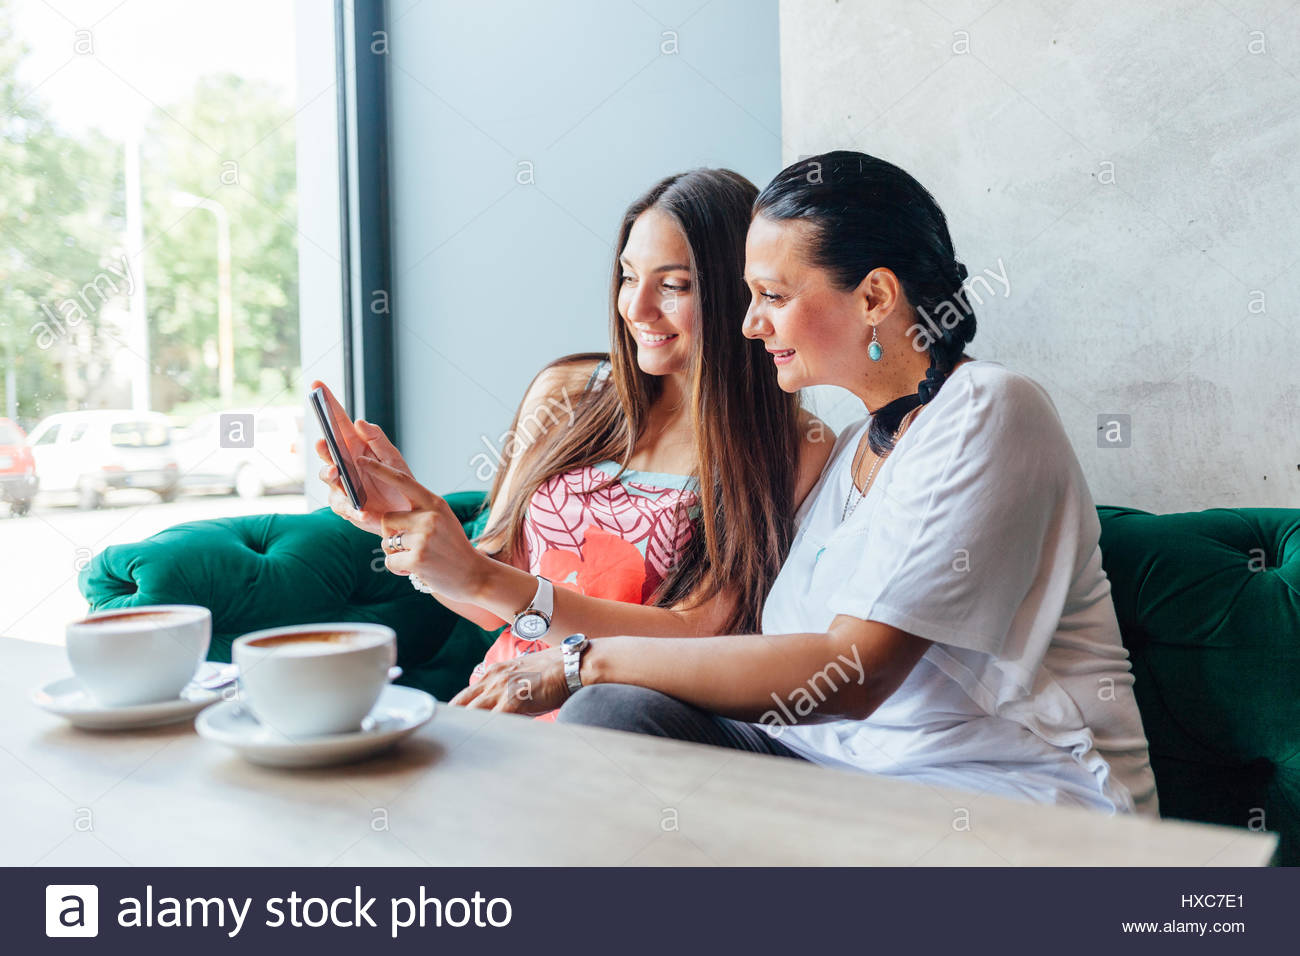 Mother and daughter women using a mobile phone in a cafe - Stock Image